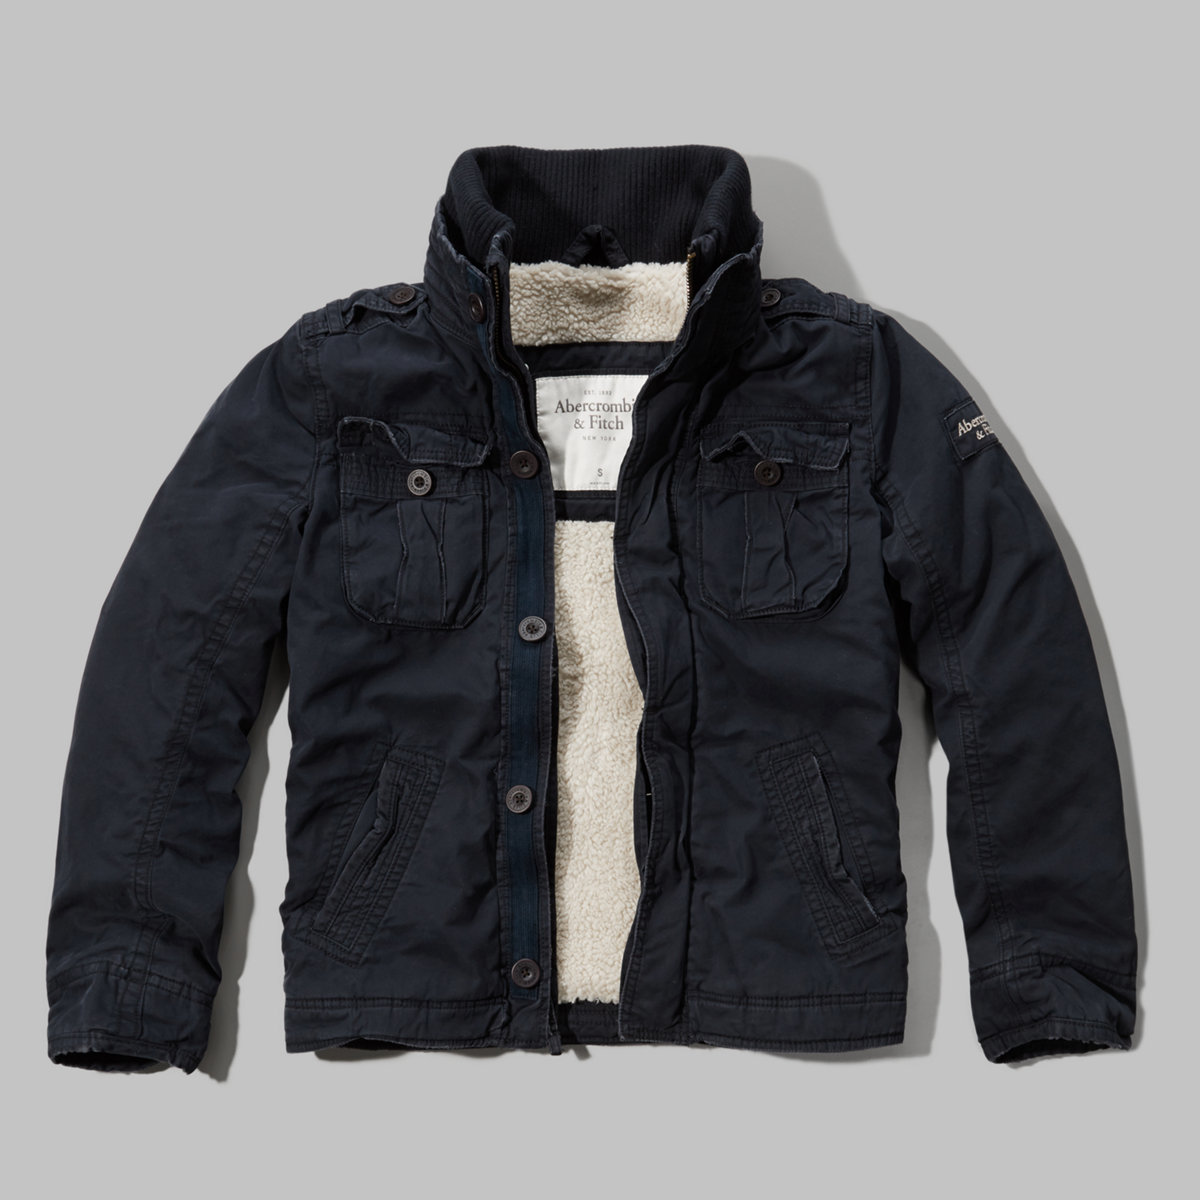 Mount Armstrong Sherpa Jacket